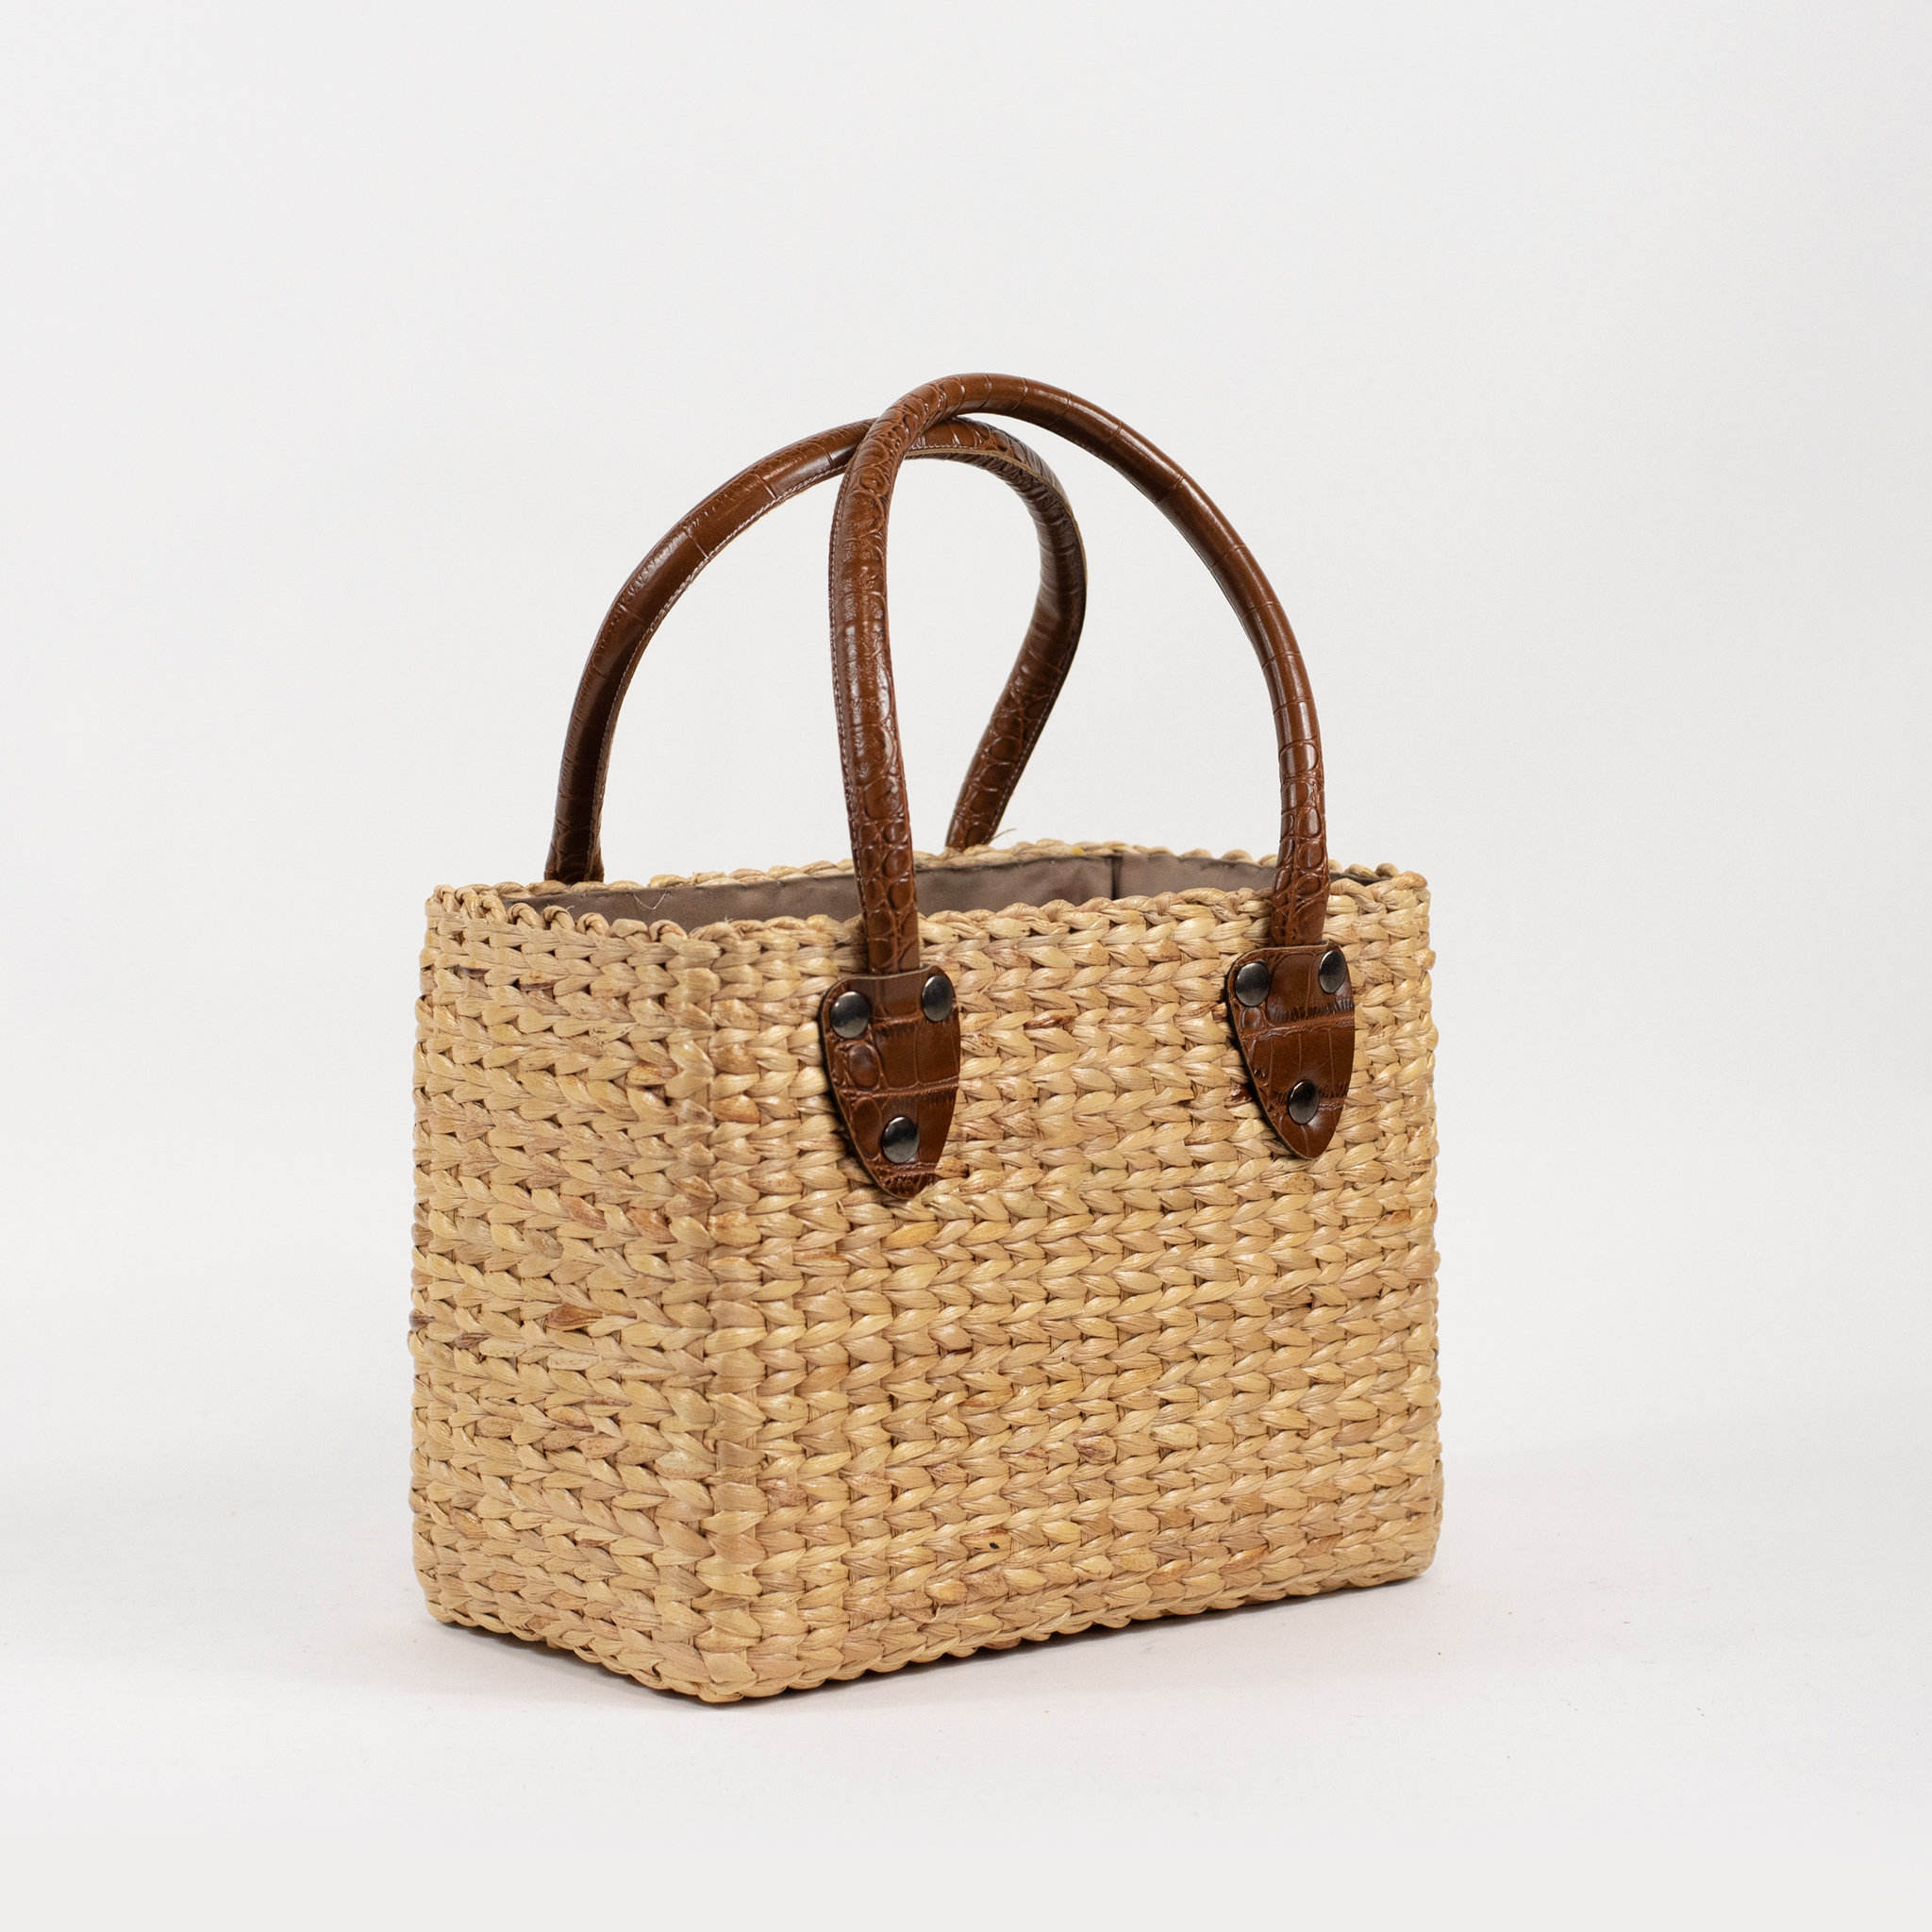 Handwoven mini straw basket